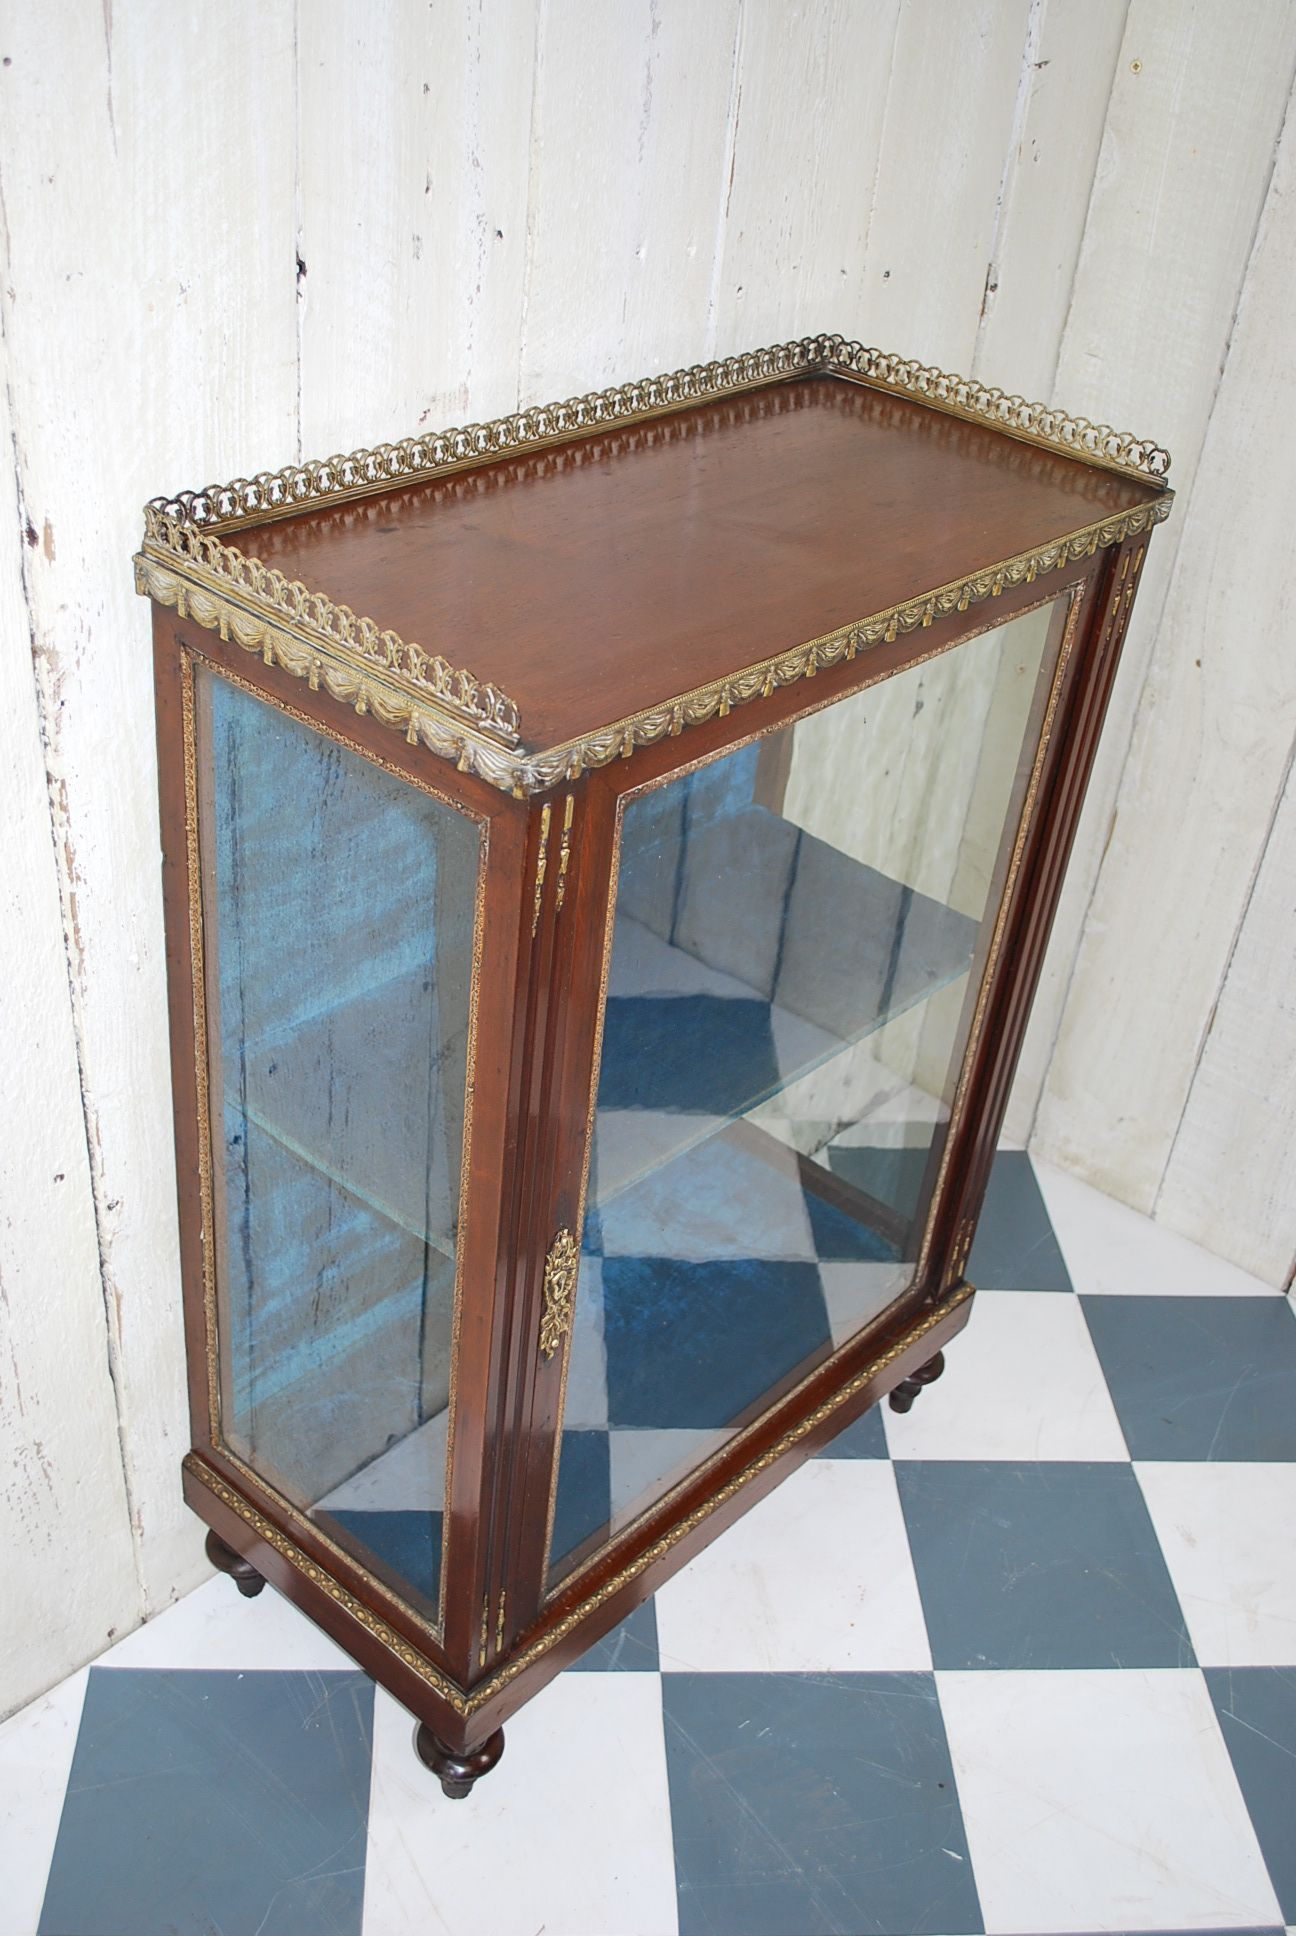 Antique farmhouse table small mahogany display cabinet with ormolou mounts for sale in uk